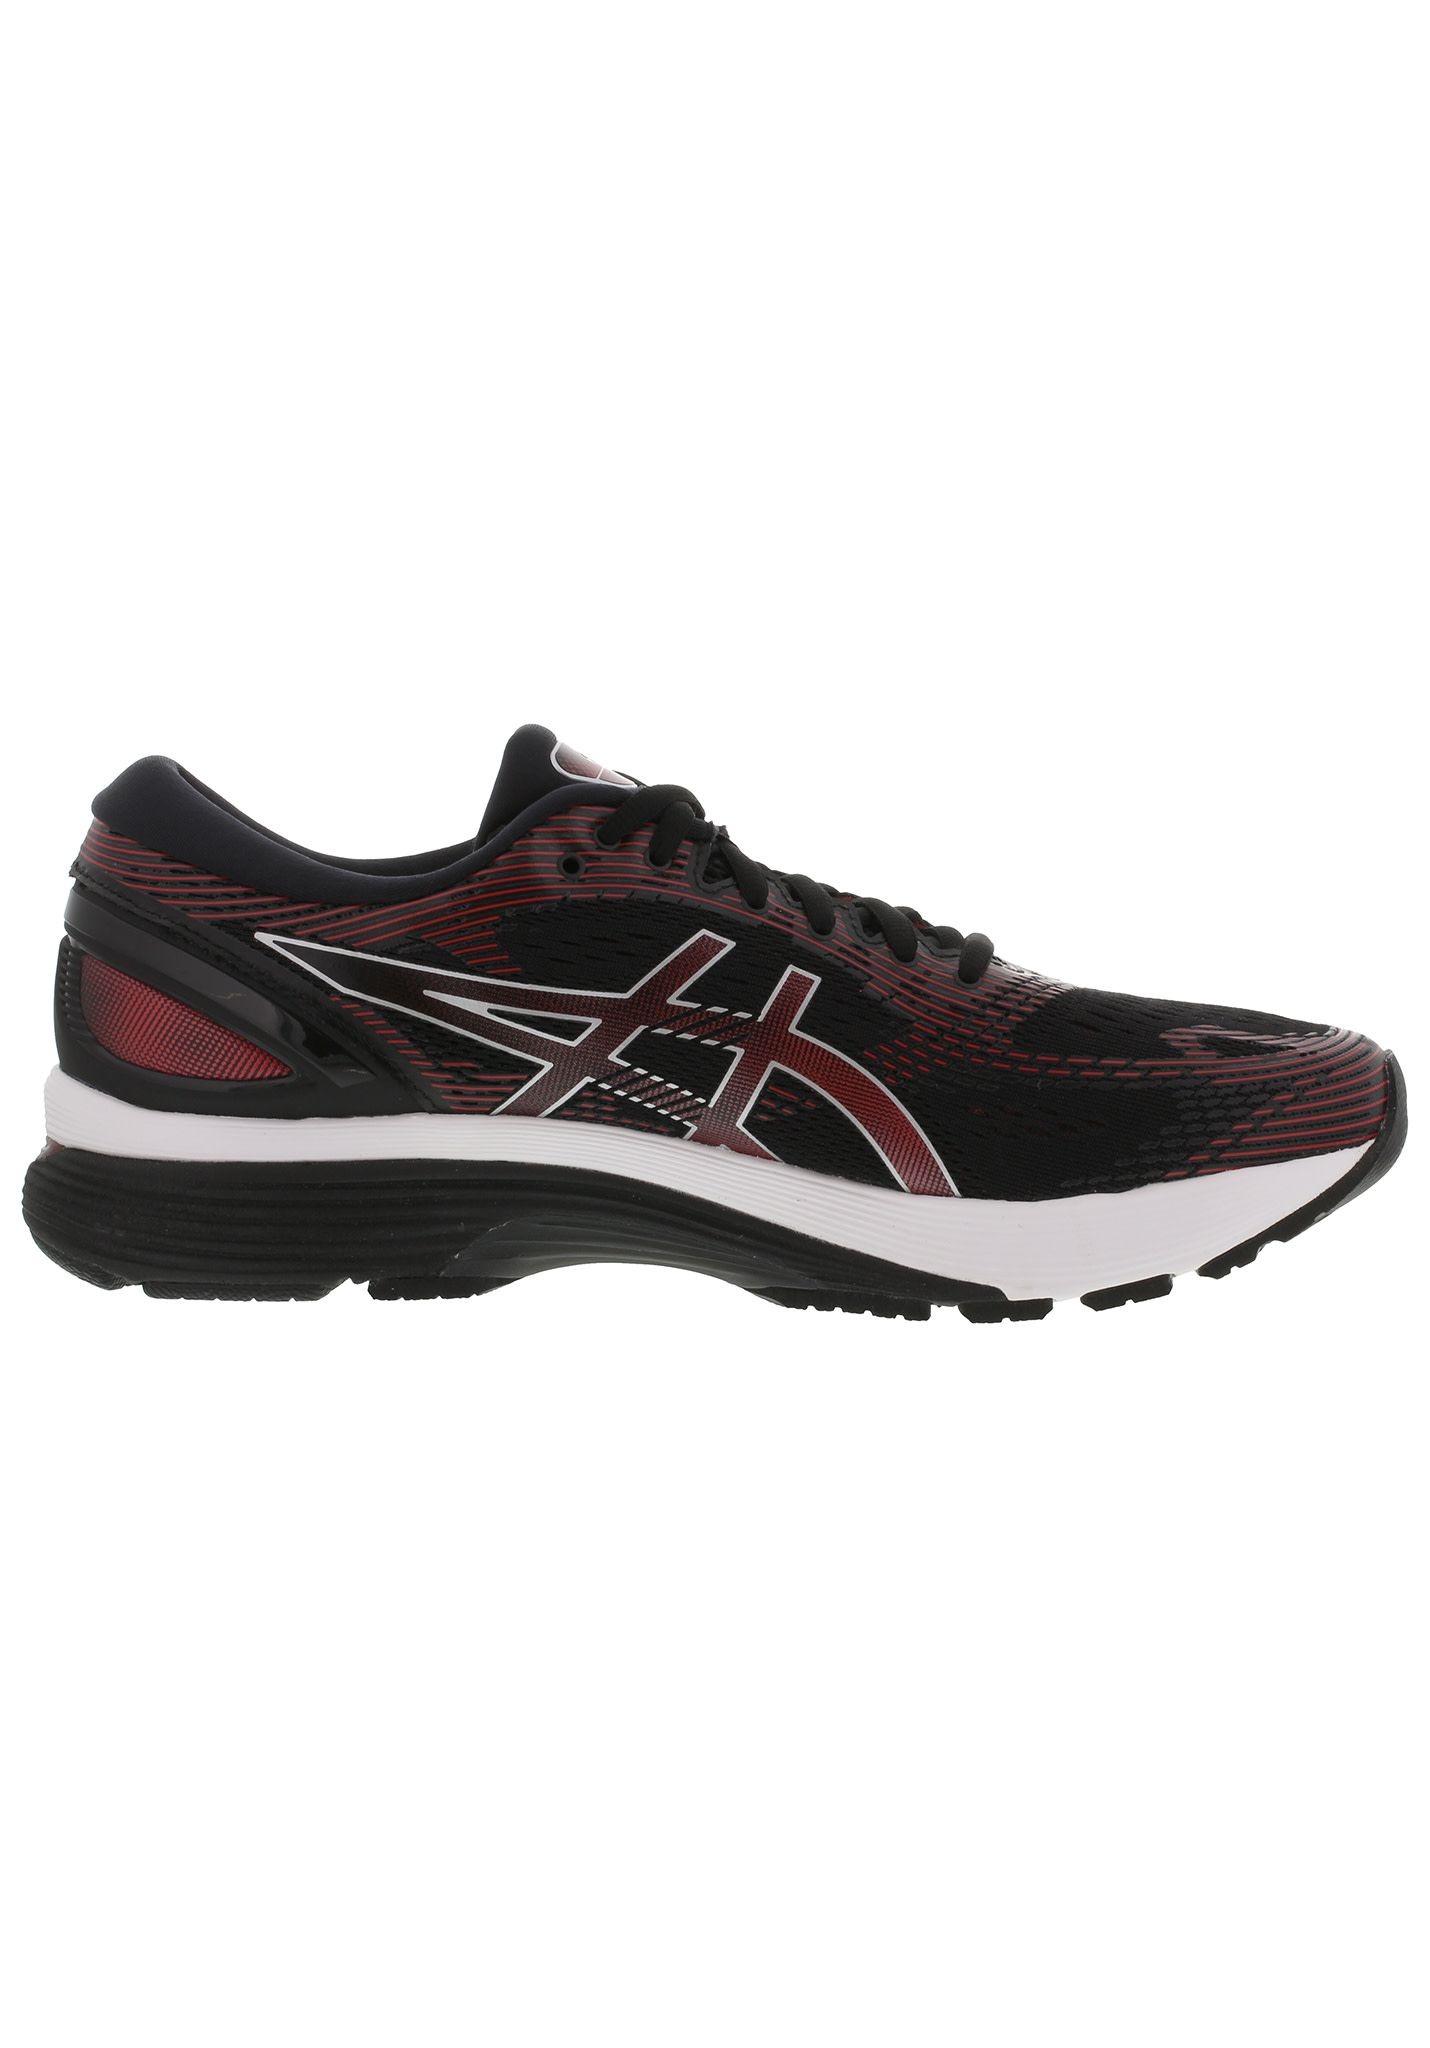 d9121f763 ASICS Gel-Nimbus 21 - Running shoes for Men - Black